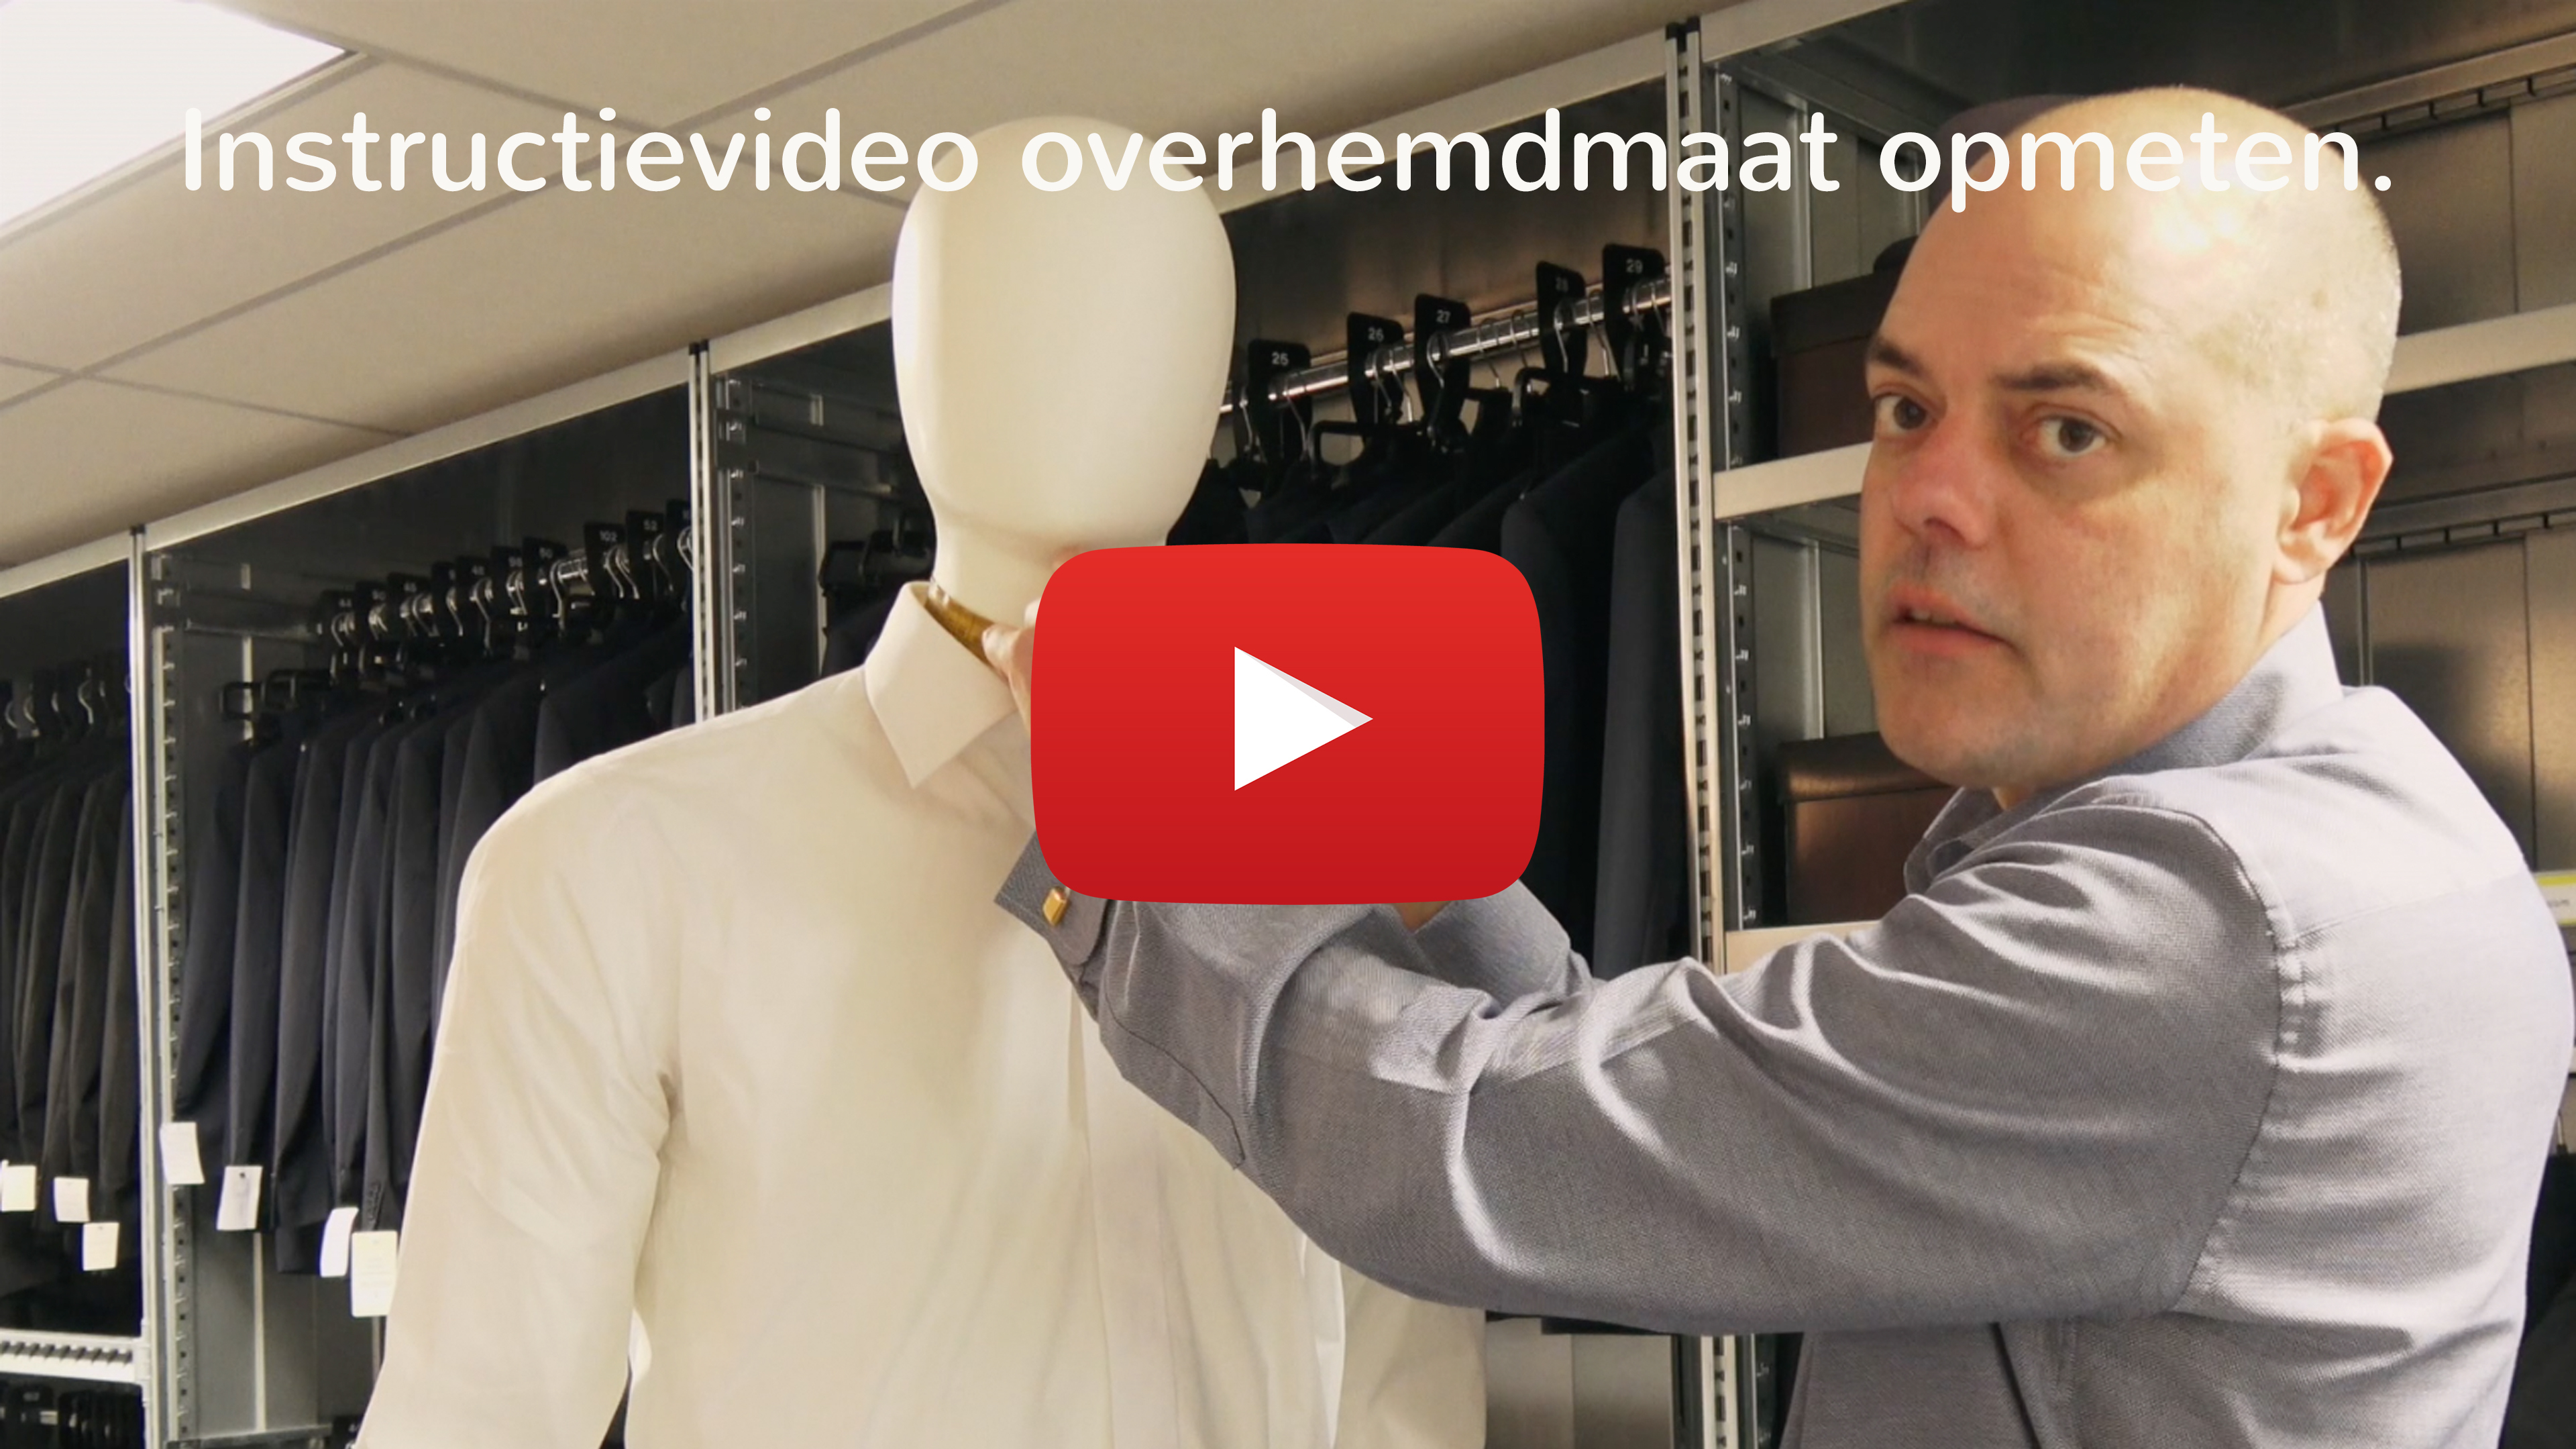 Instructievideo overhemdmaat opmeten